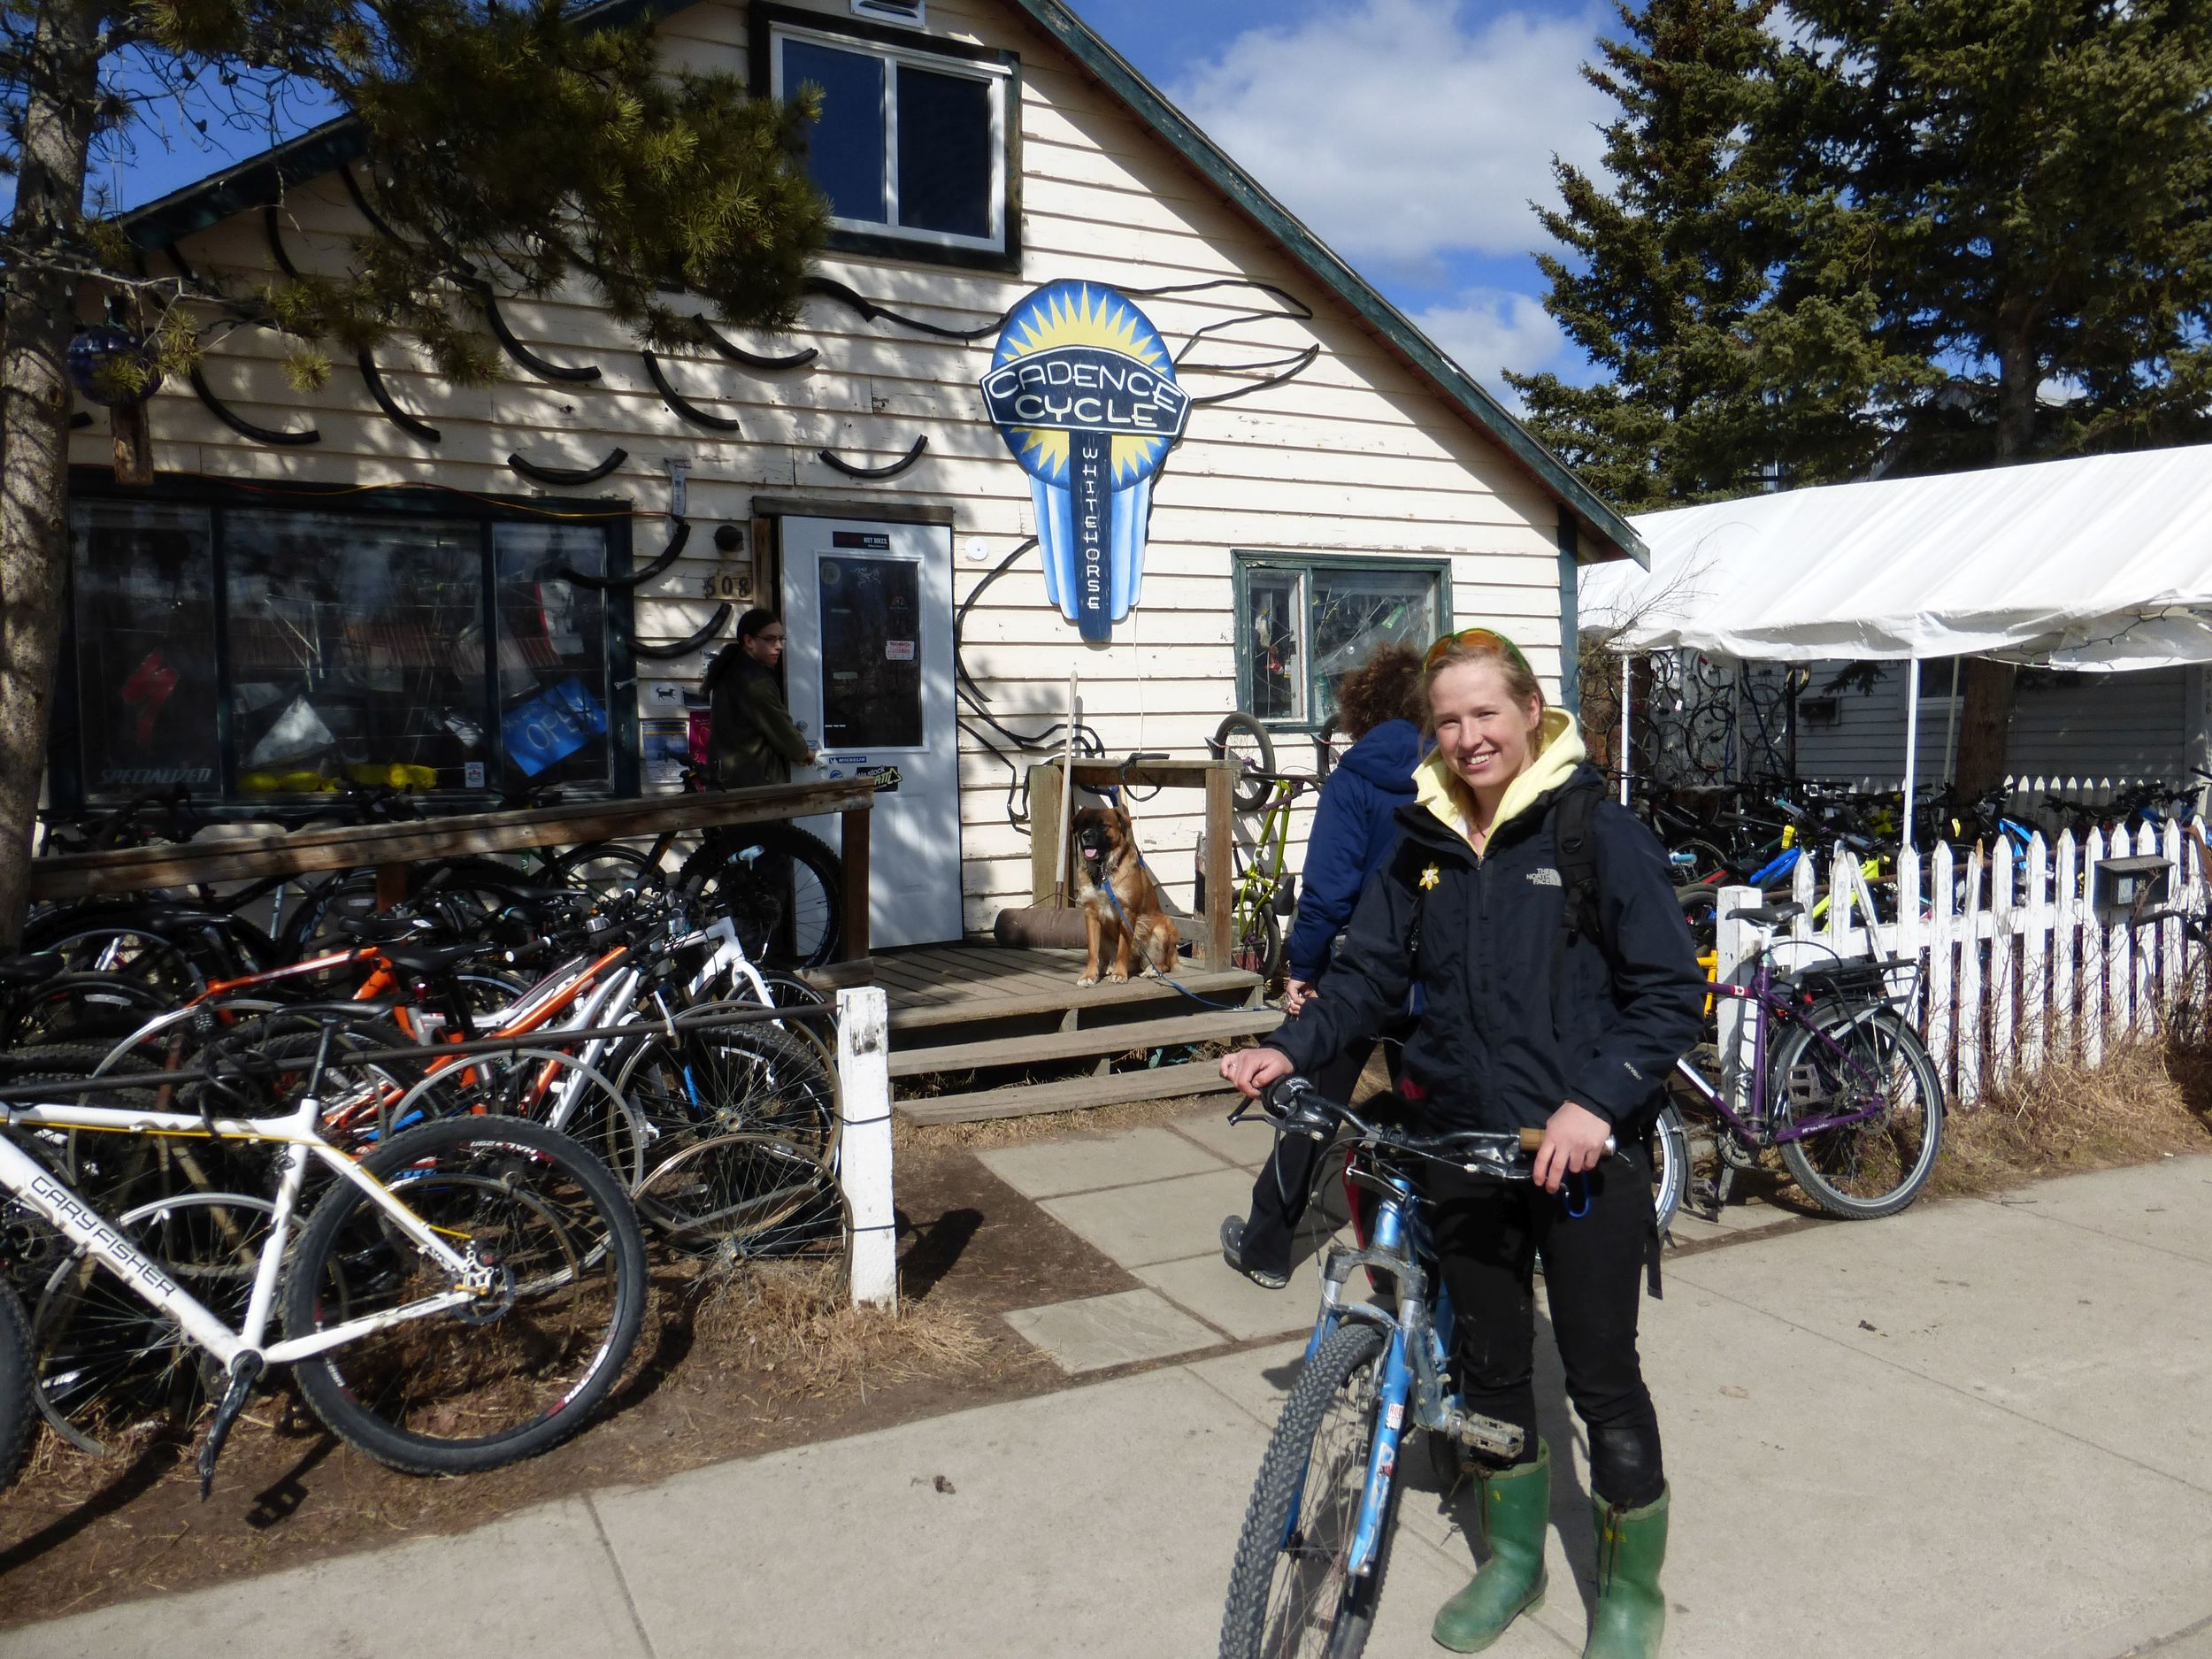 When I was at the bike shop I ran into Anna, she had cycled The Dempster when she was 17 with her sister (15) and I met her last year at the Yukon river and then at Whitehorse. It's a small world up here!